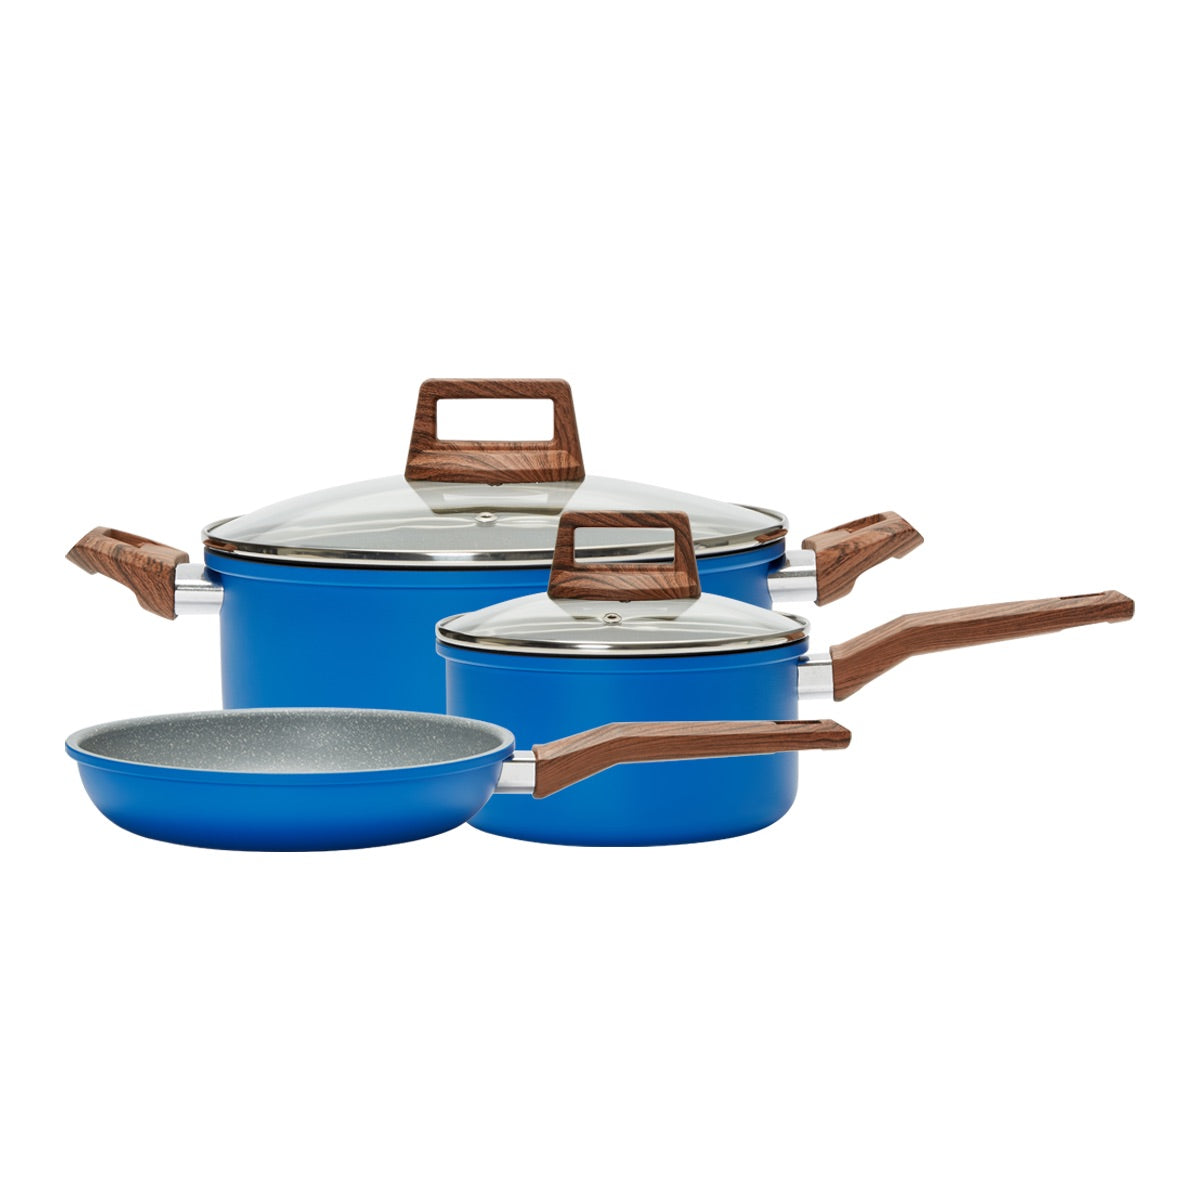 5 PC Cookware Set- BLUE